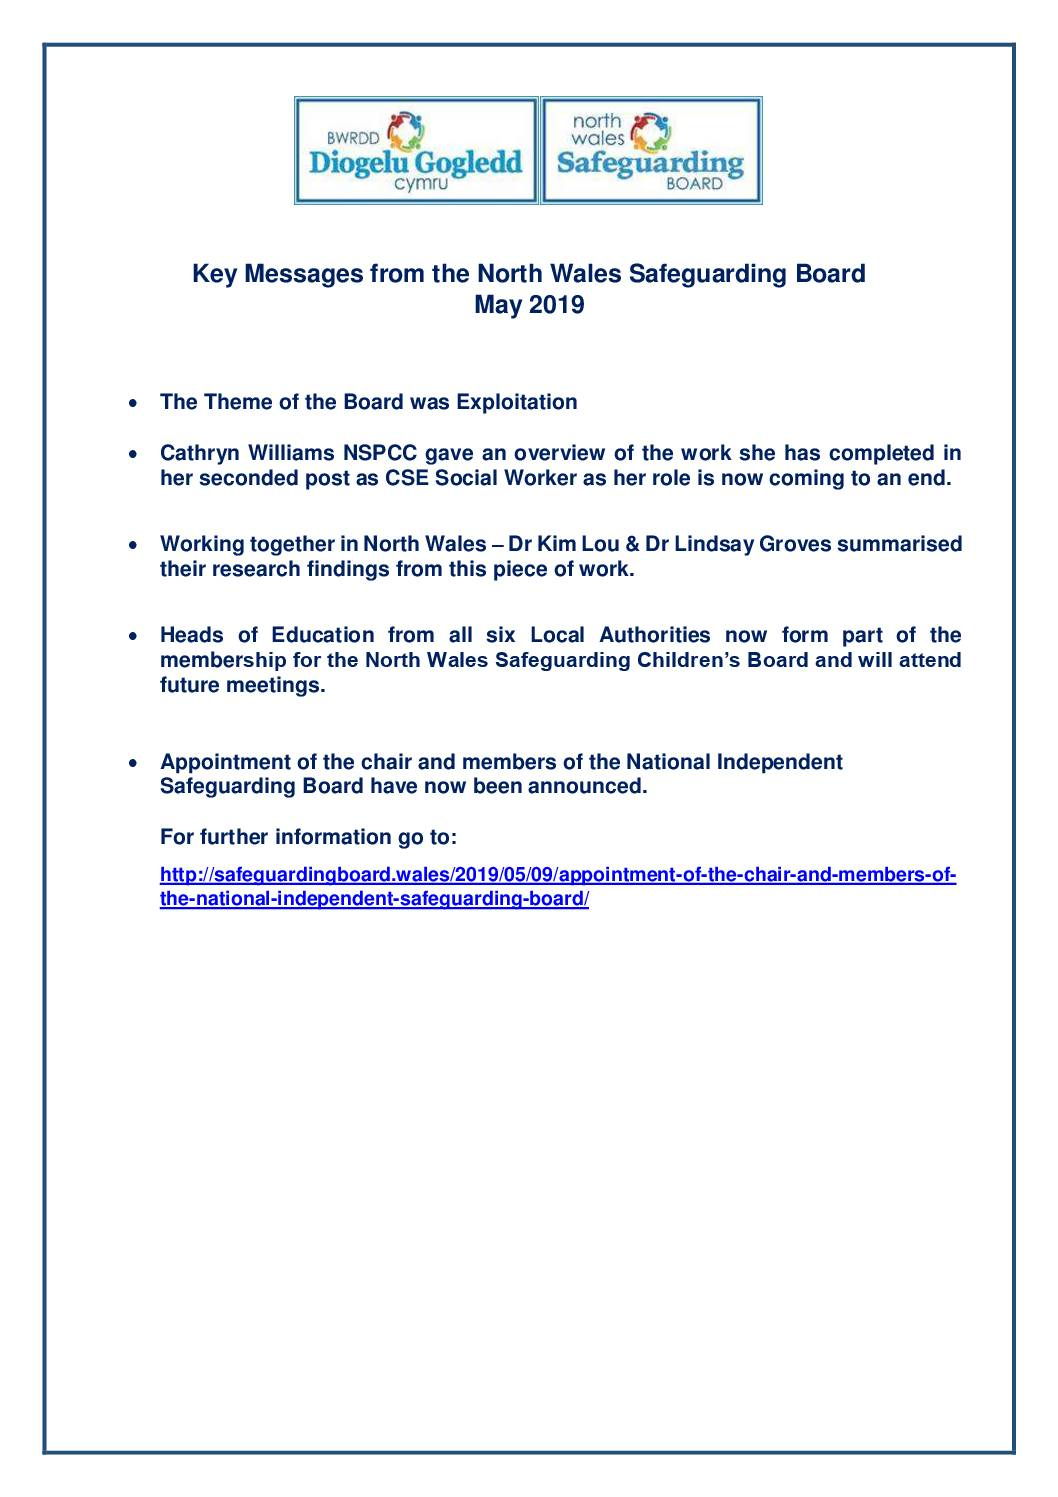 Key Messages NWSCB May 2019